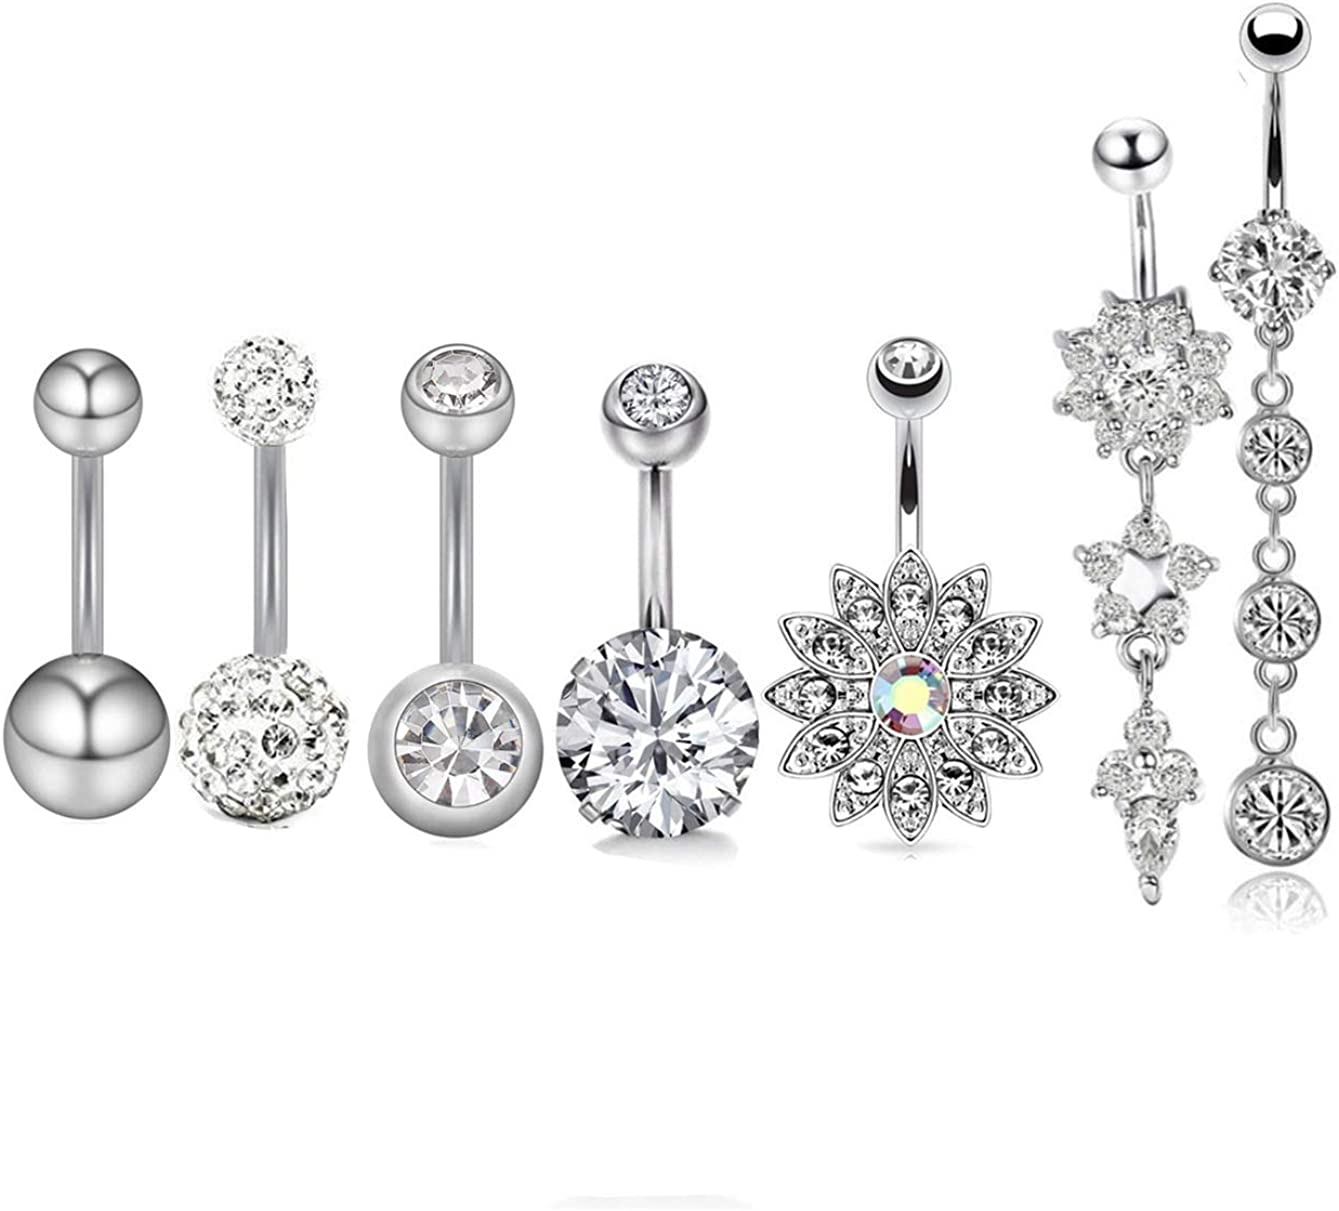 Belly Button Rings for Women Navel Piercing Bars Stainless Steel Body Jewelry